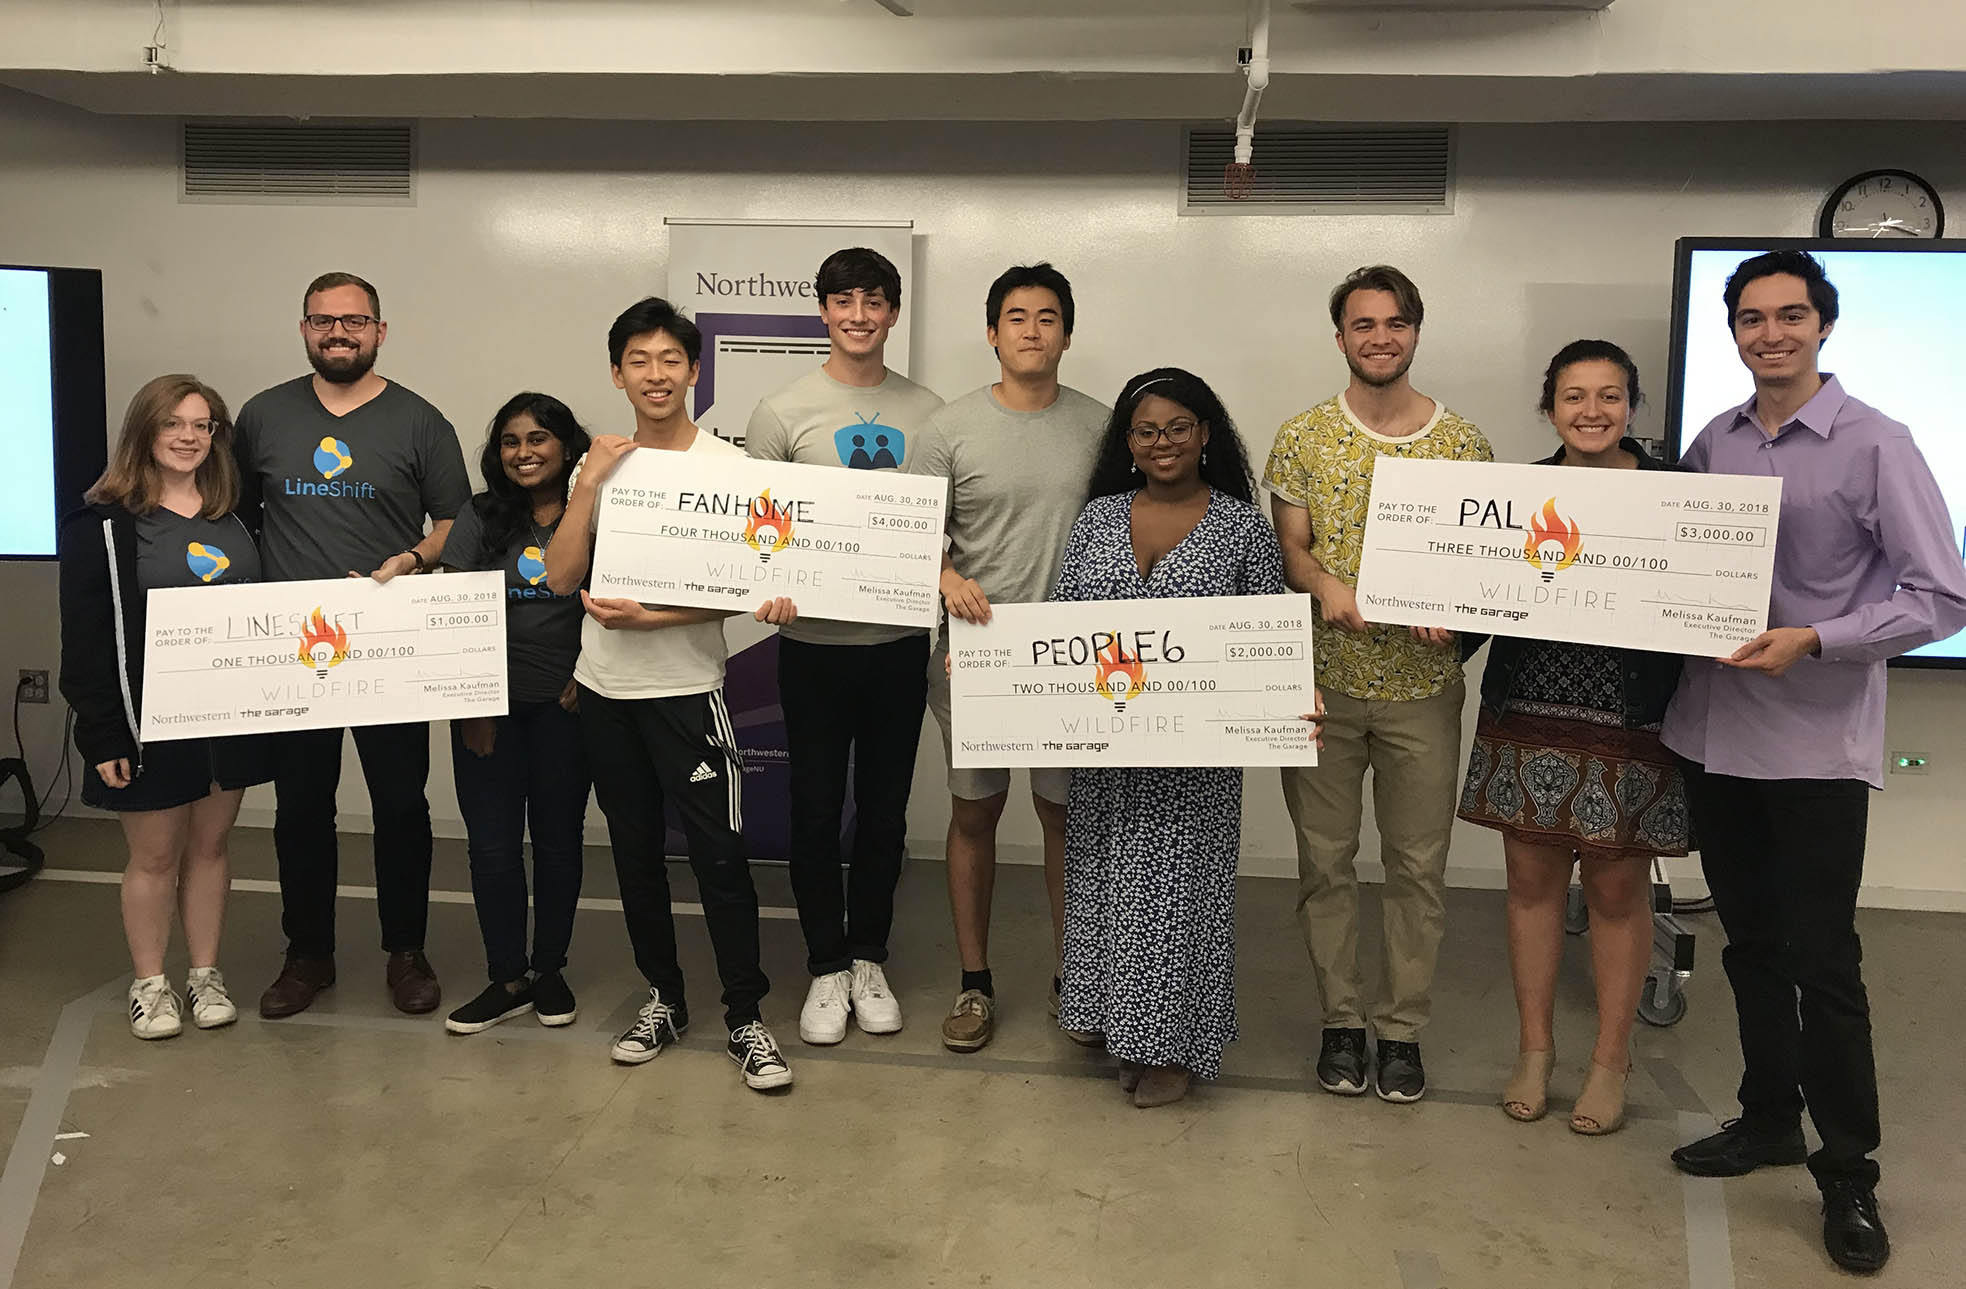 Image of Wildfire Demo Day winners